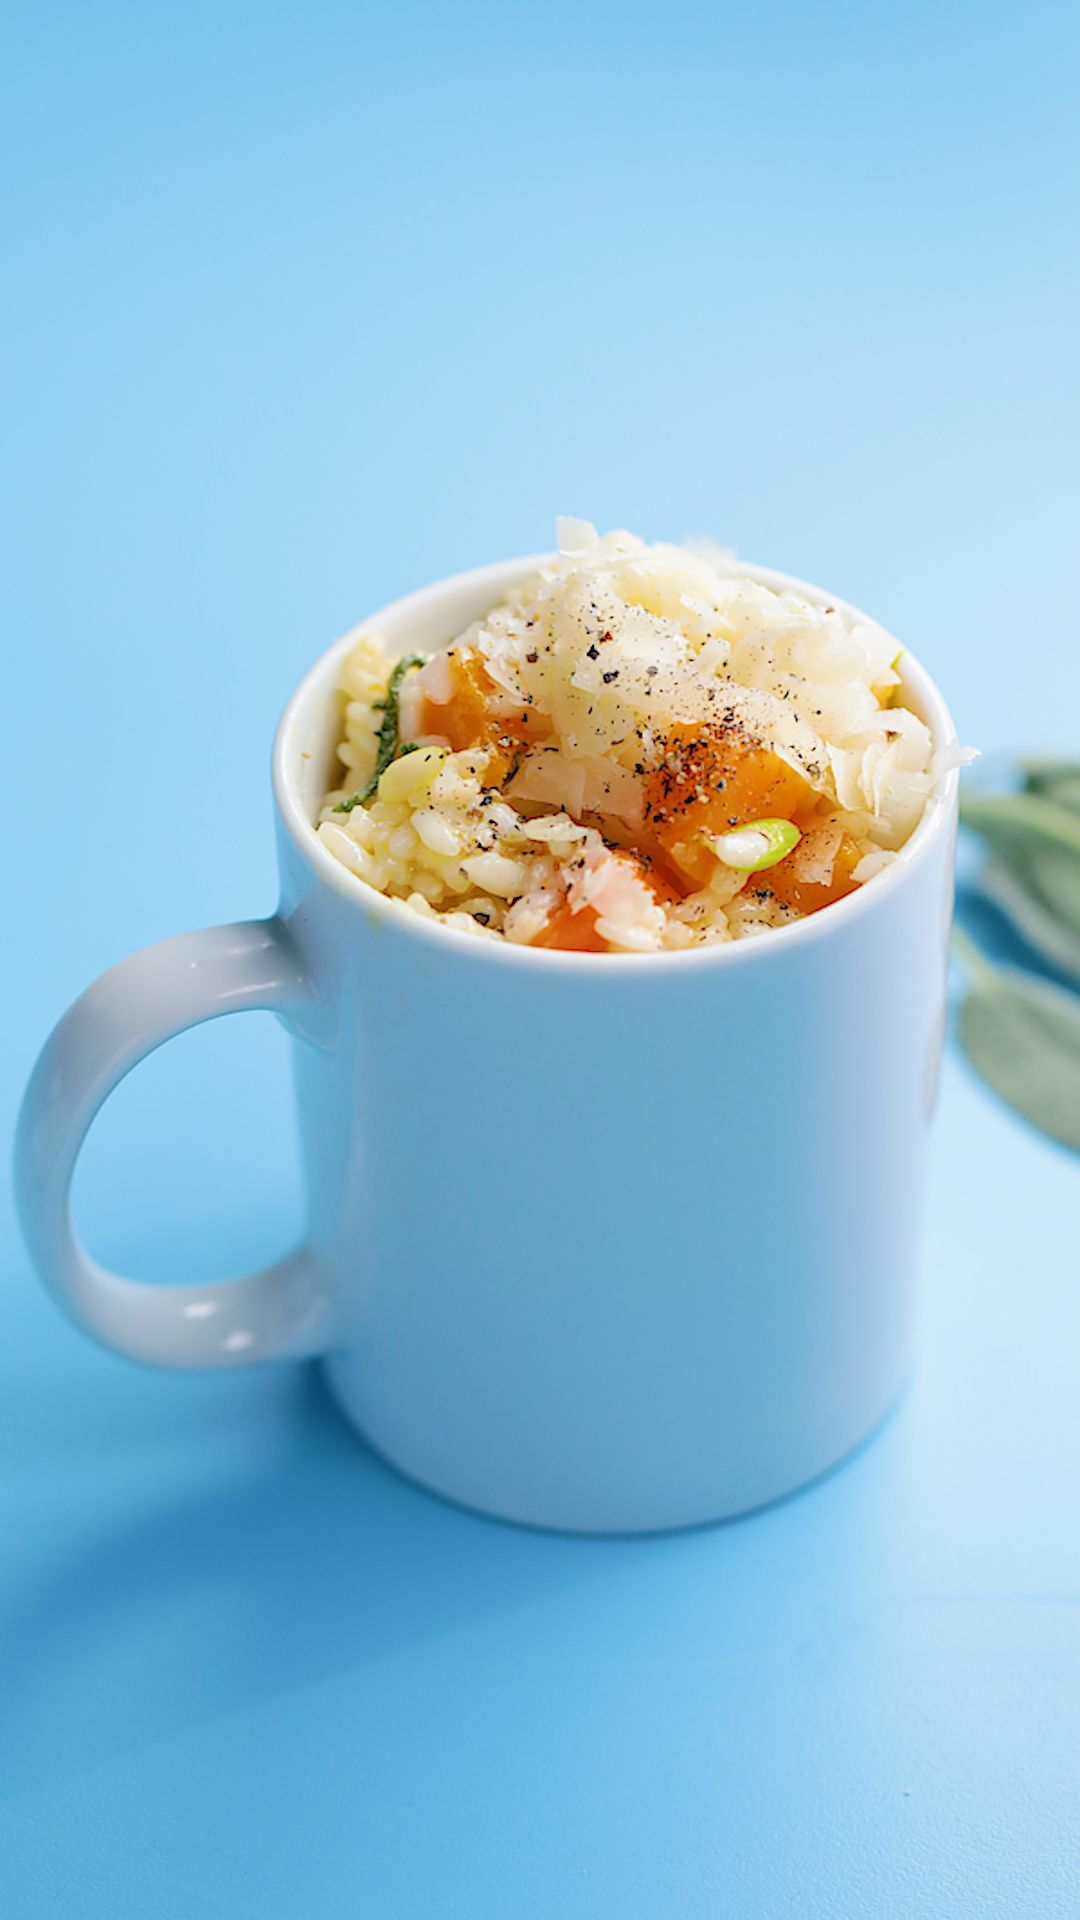 Just in time for autumn: four easy-to-make, cozy comfort recipes!